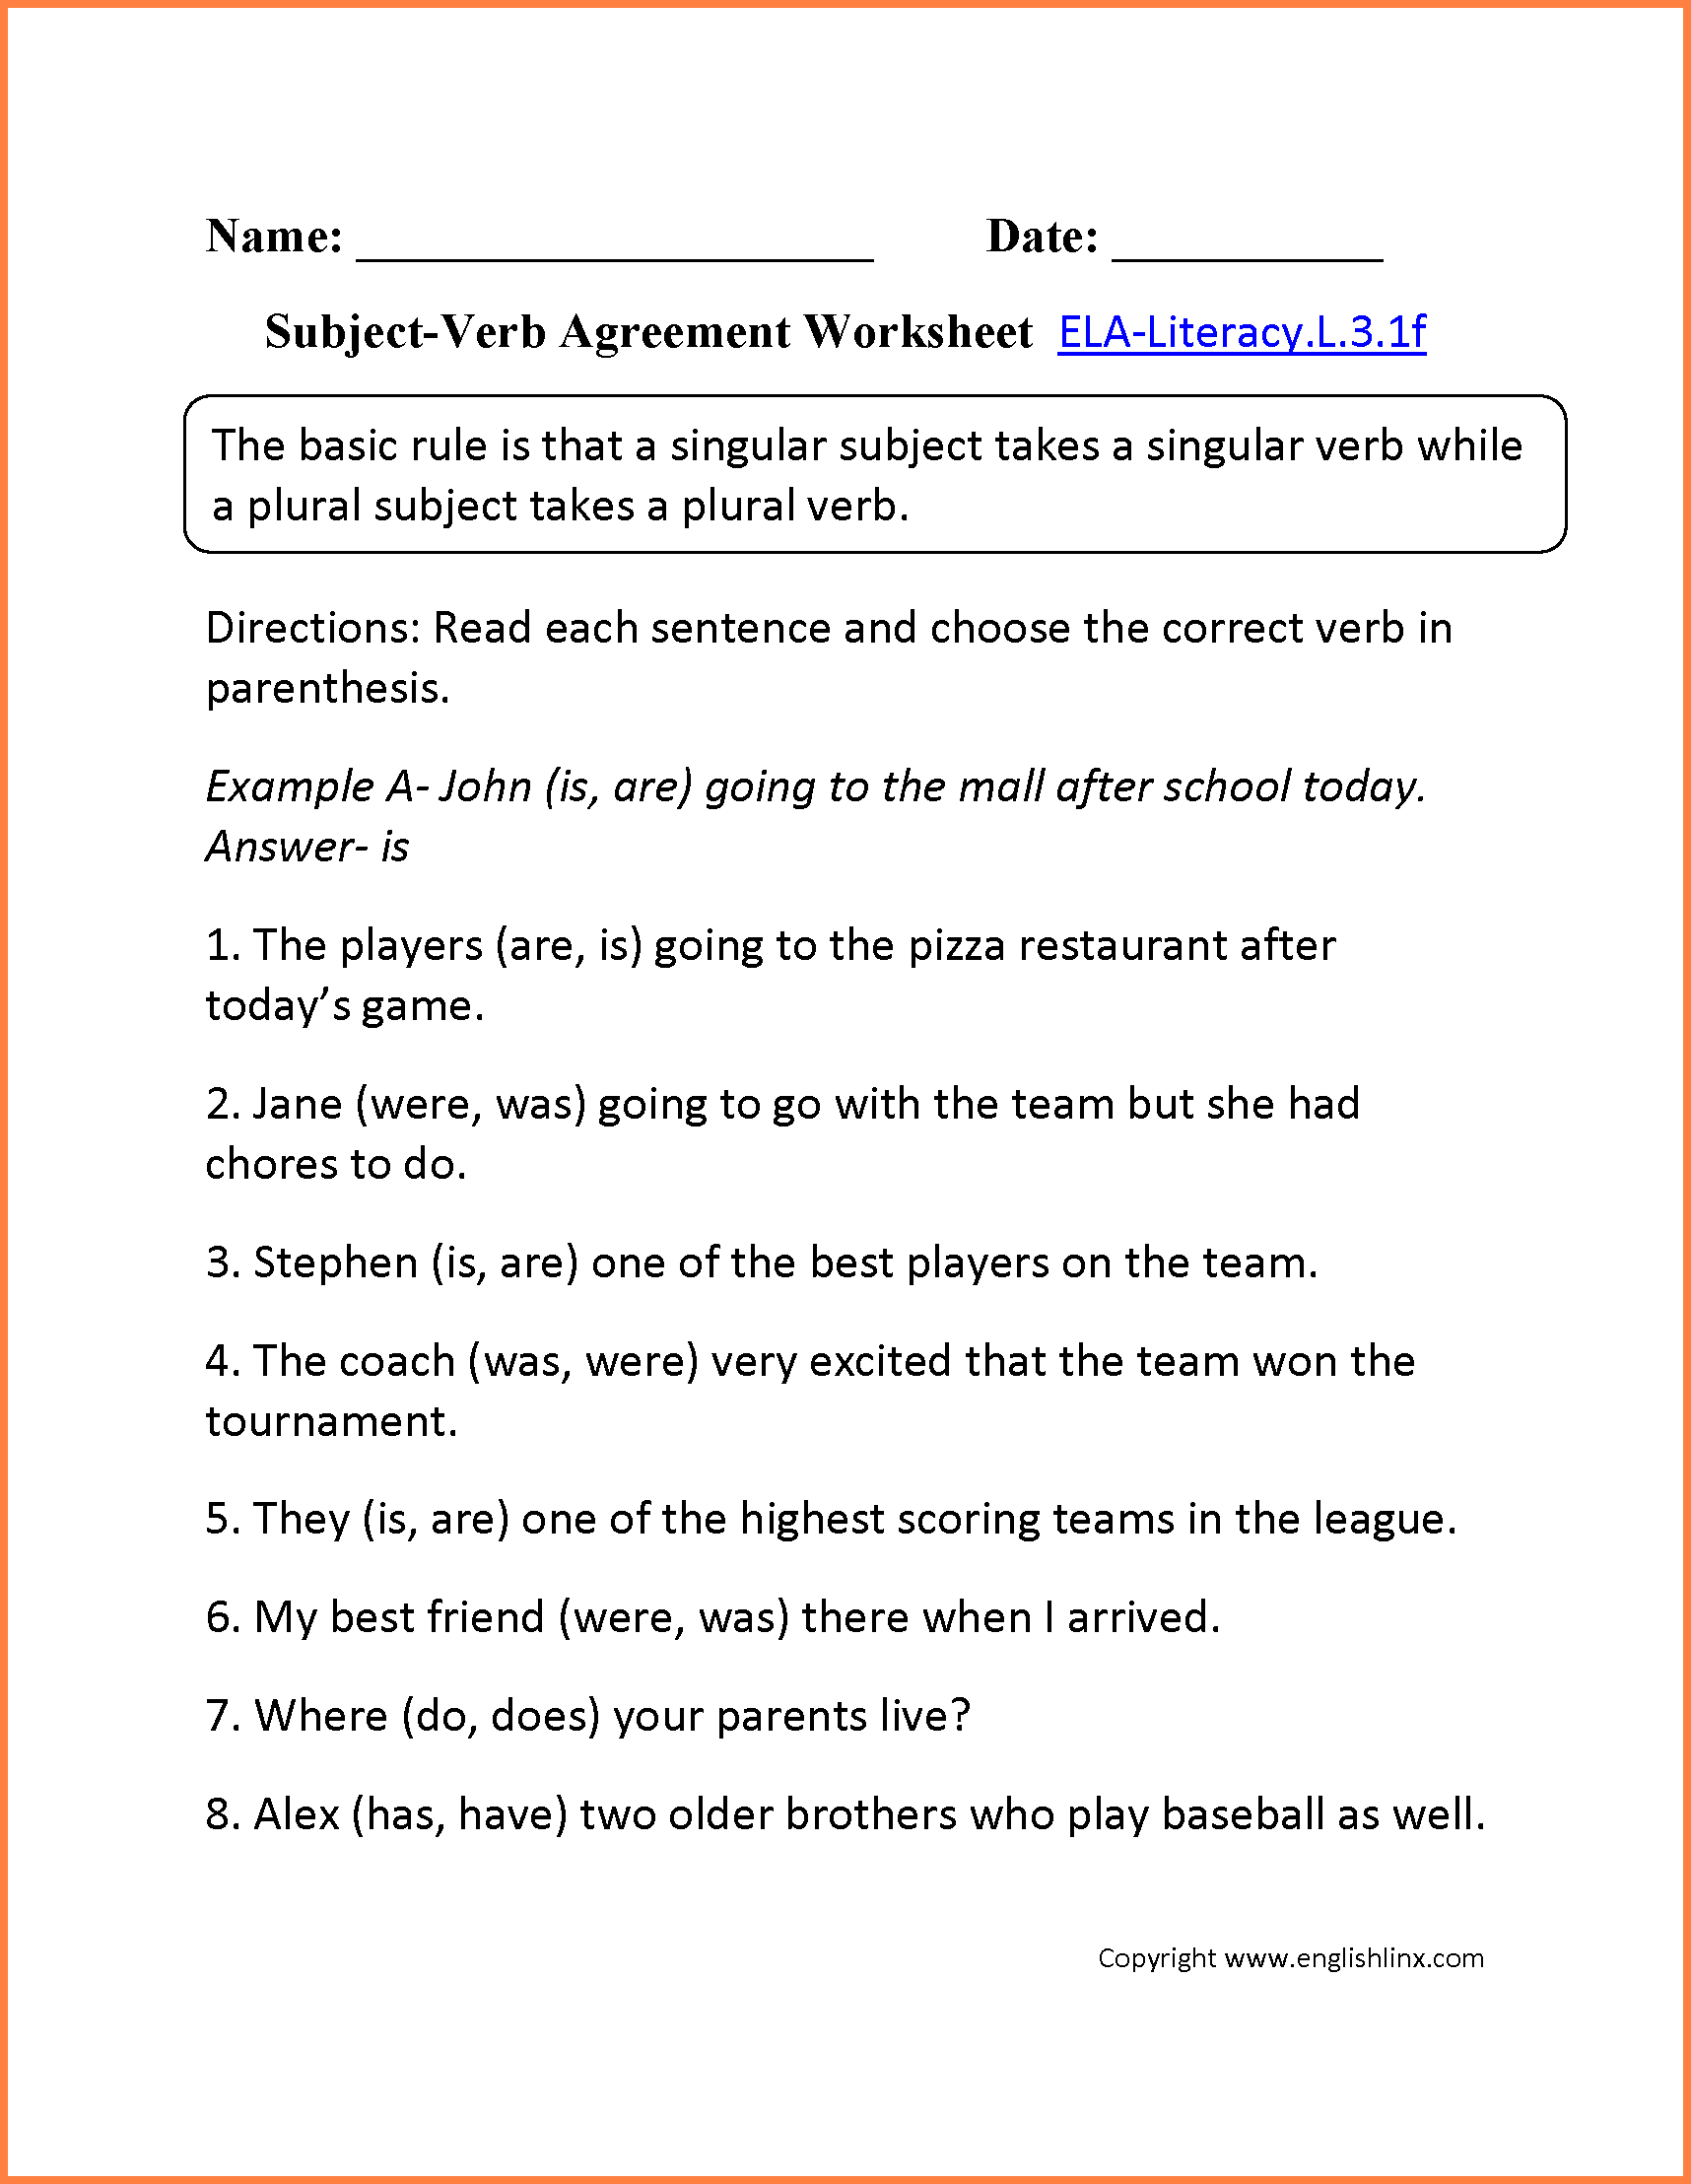 Worksheet On Pronoun Verb Agreement